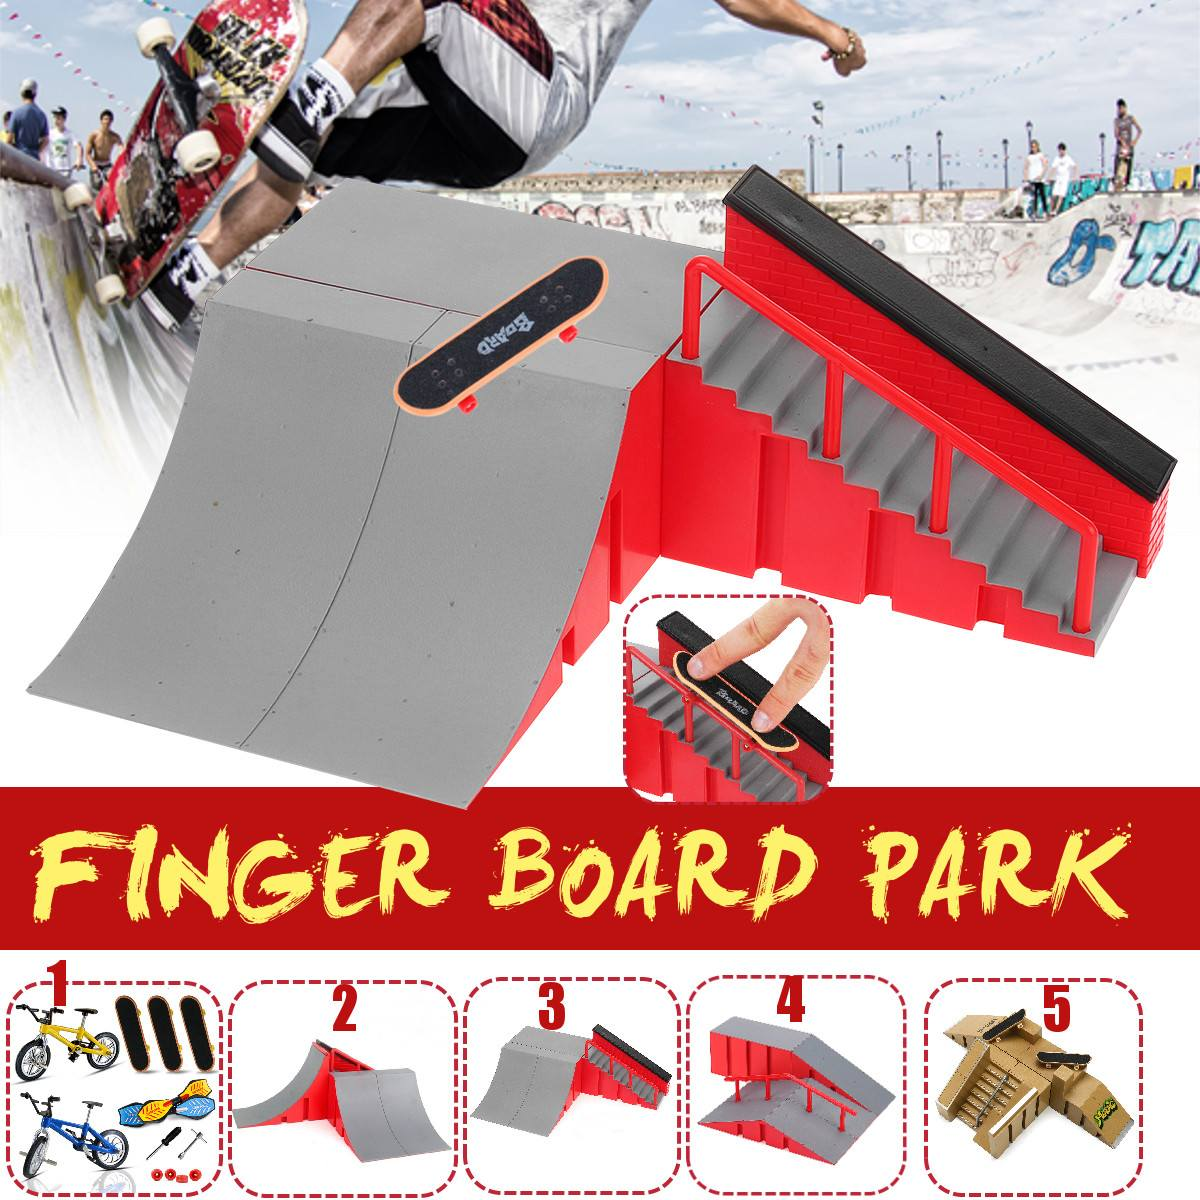 Mini Bike Fingerboard Ramps and Finger Boards for Kids ZHIHAN 16 Pieces Finger Skateboard Skatepark Set with Replacement Wheels and Tools Birthday Gifts Party Favors for Boys and Girls